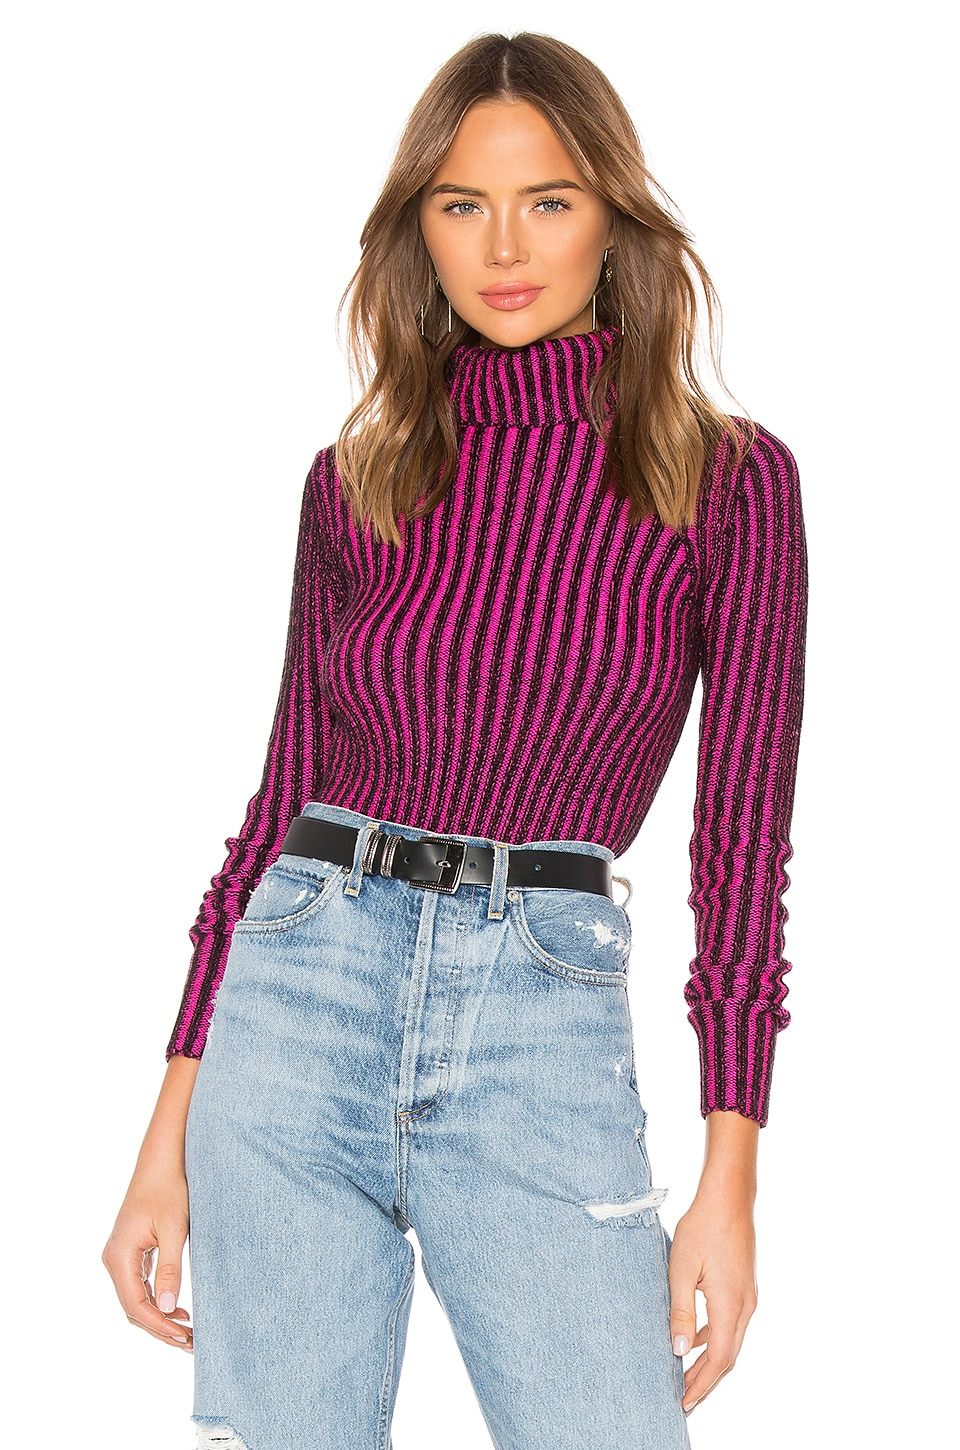 Lovers + Friends Tempo Sweater in Black & Magenta